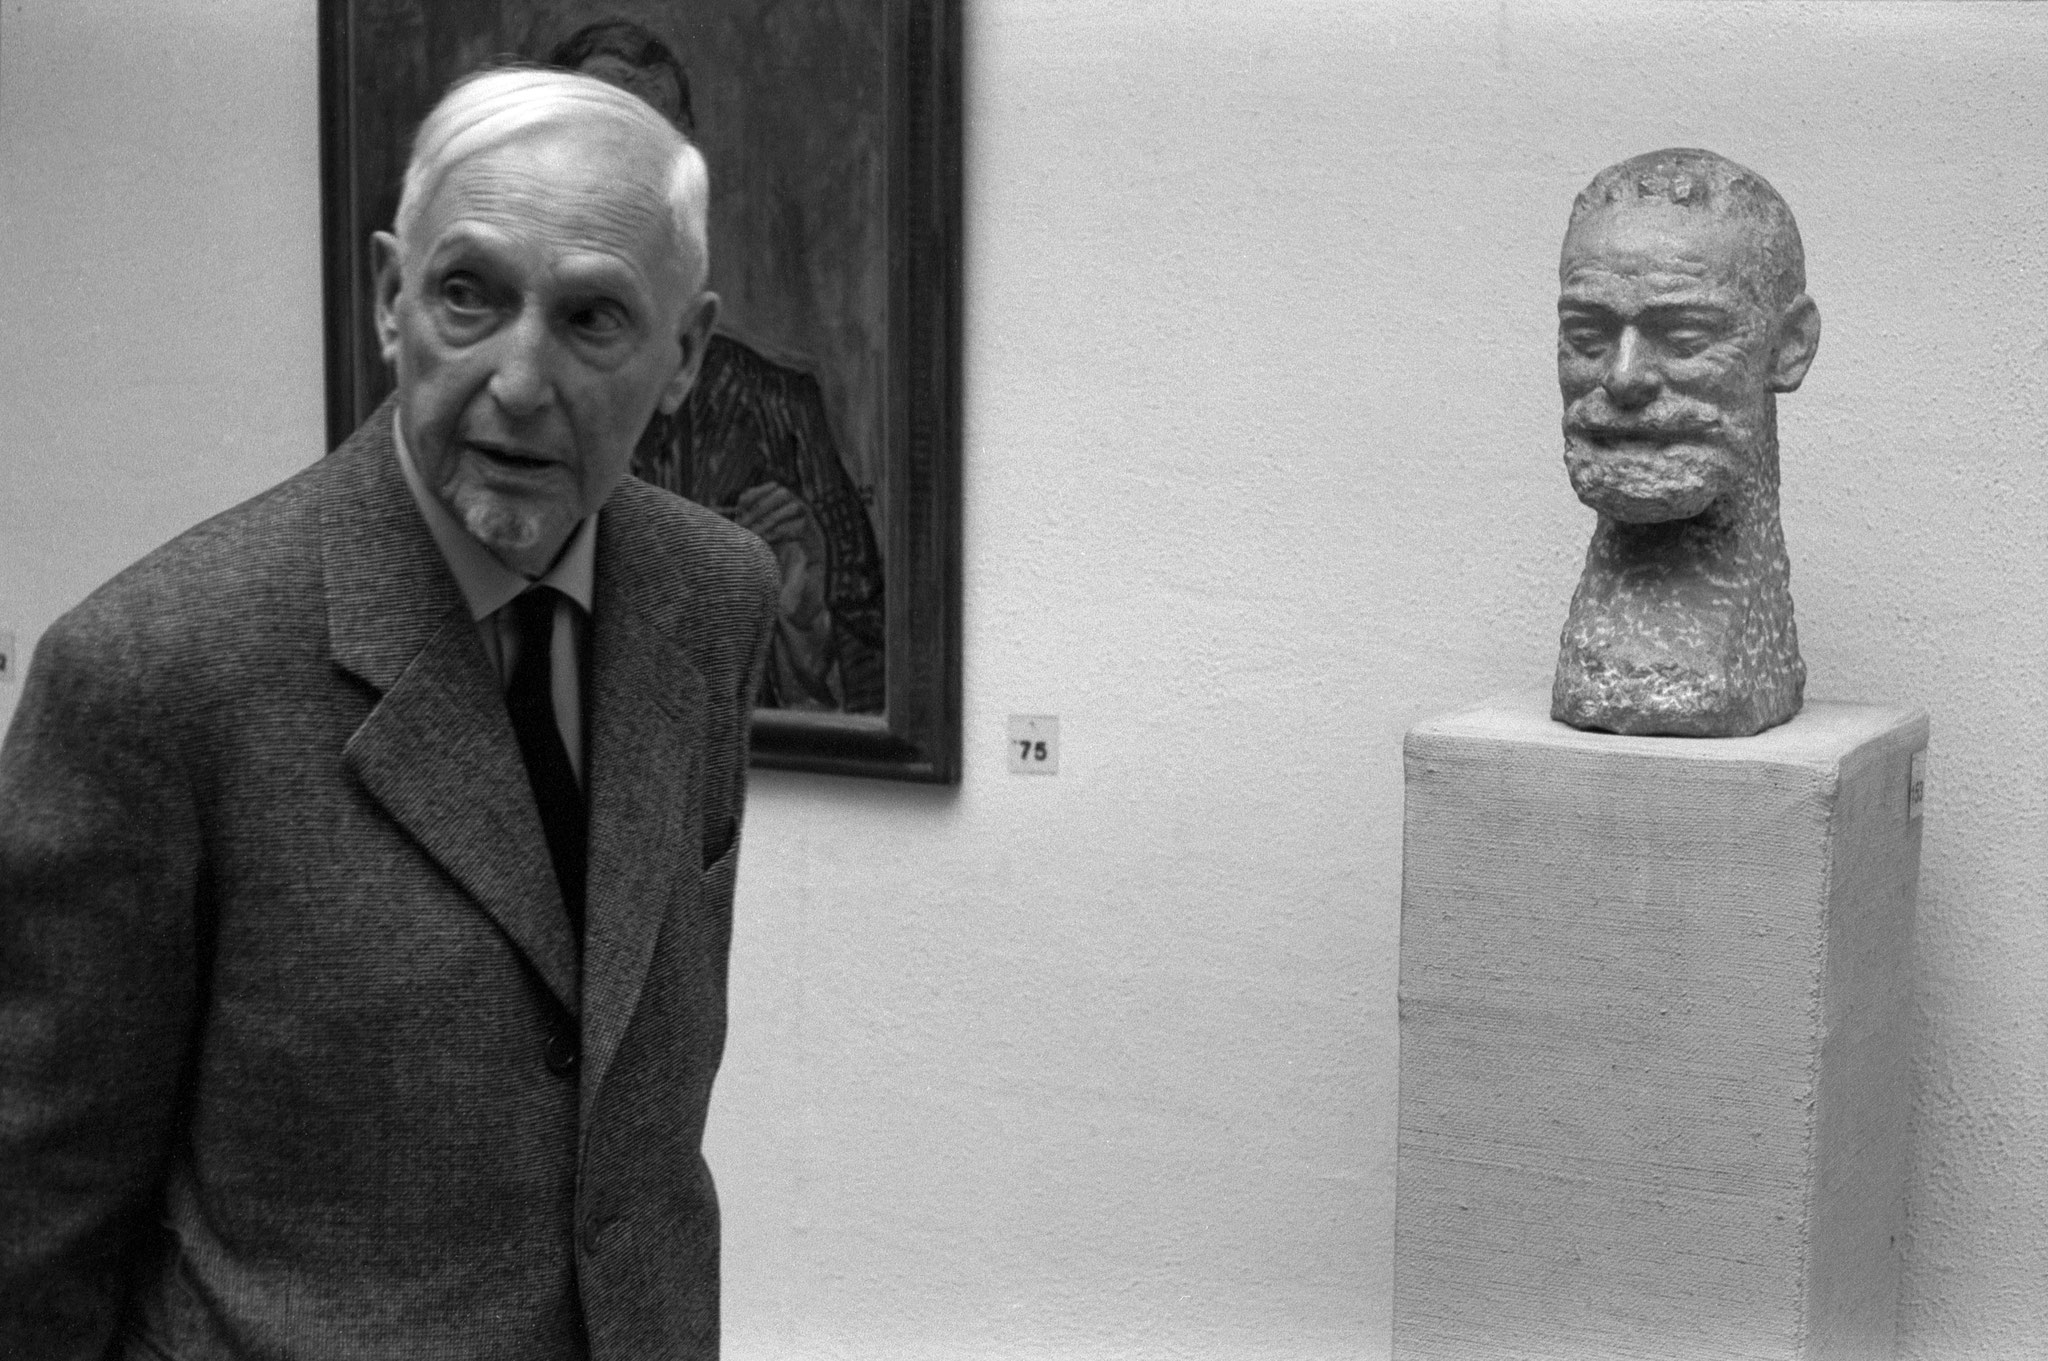 Cuno Amiet with Bust of Ferdinand Hodler